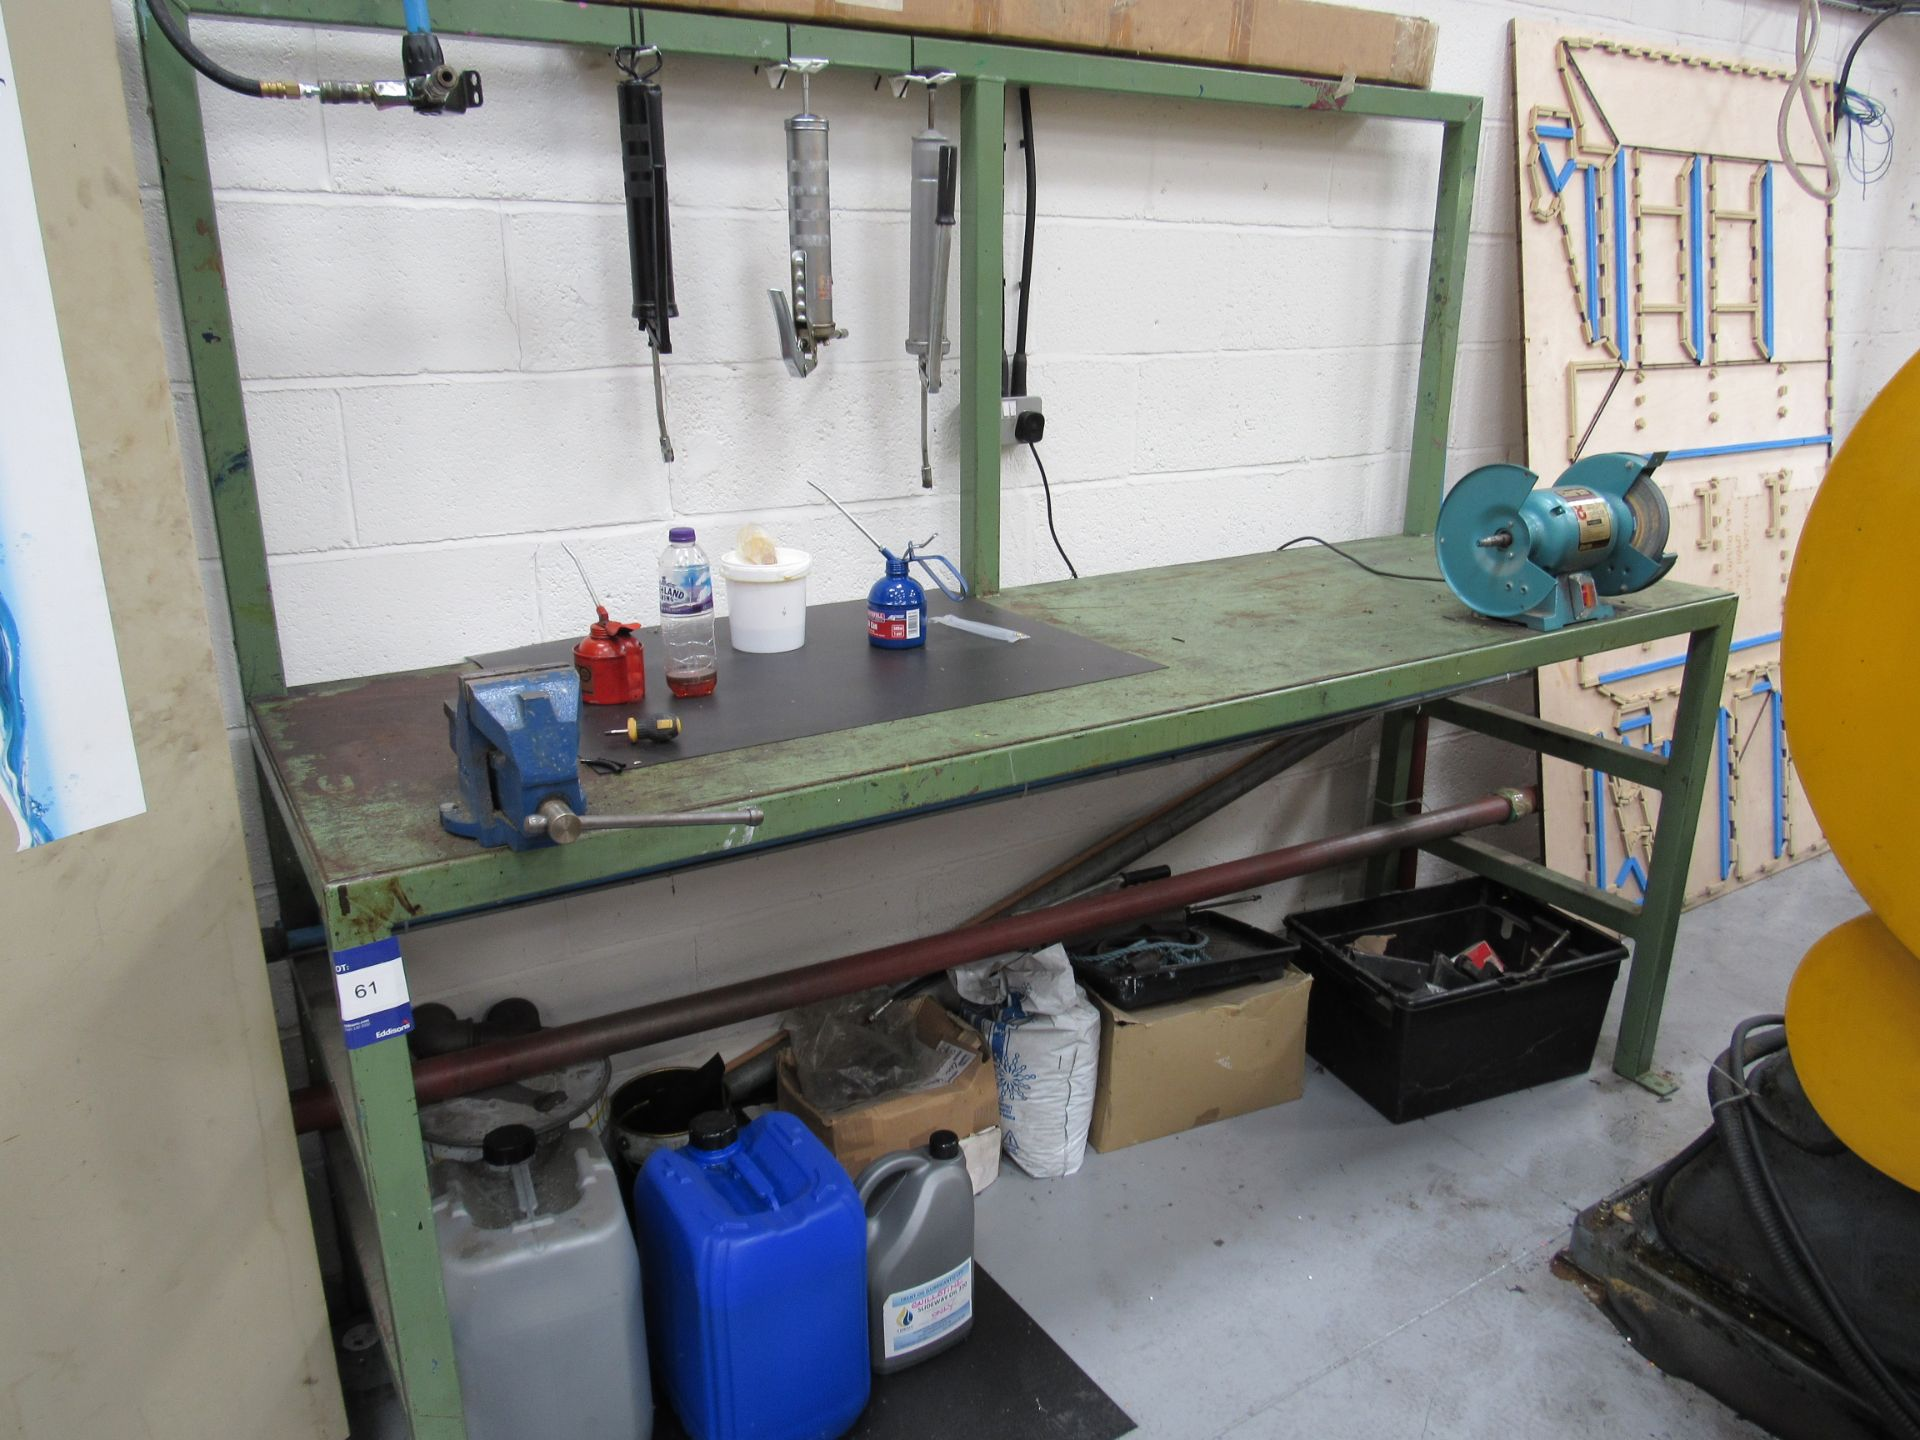 """Steel Work Bench with Vice and Clarke 8"""" Bench Grinder - Image 2 of 2"""